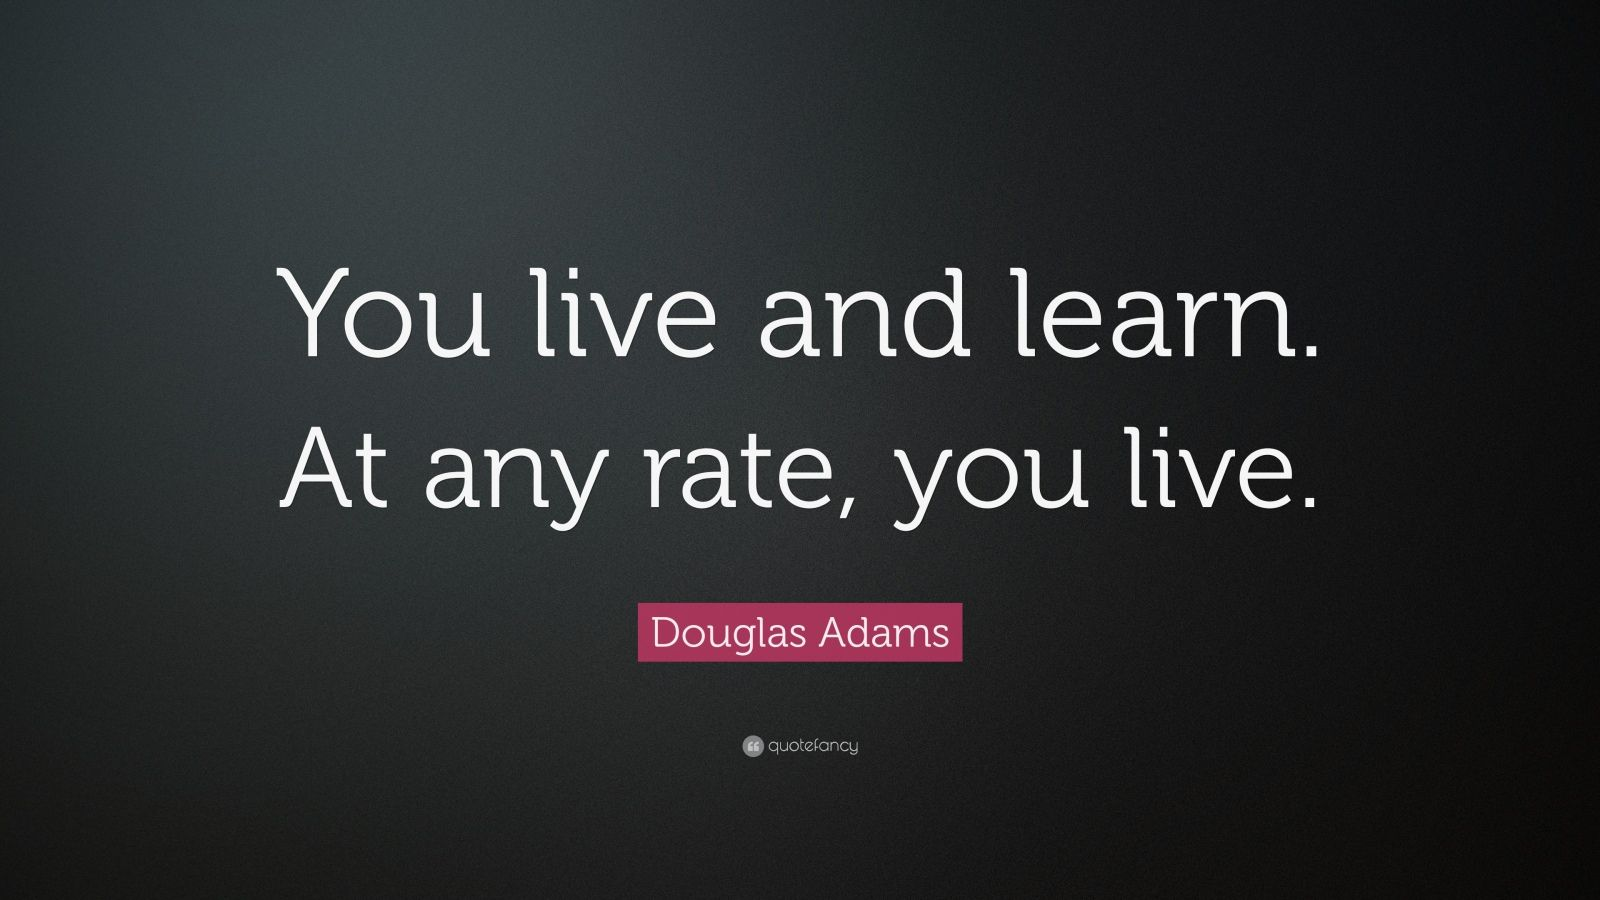 Benjamin Franklin Quotes Wallpaper Douglas Adams Quote You Live And Learn At Any Rate You